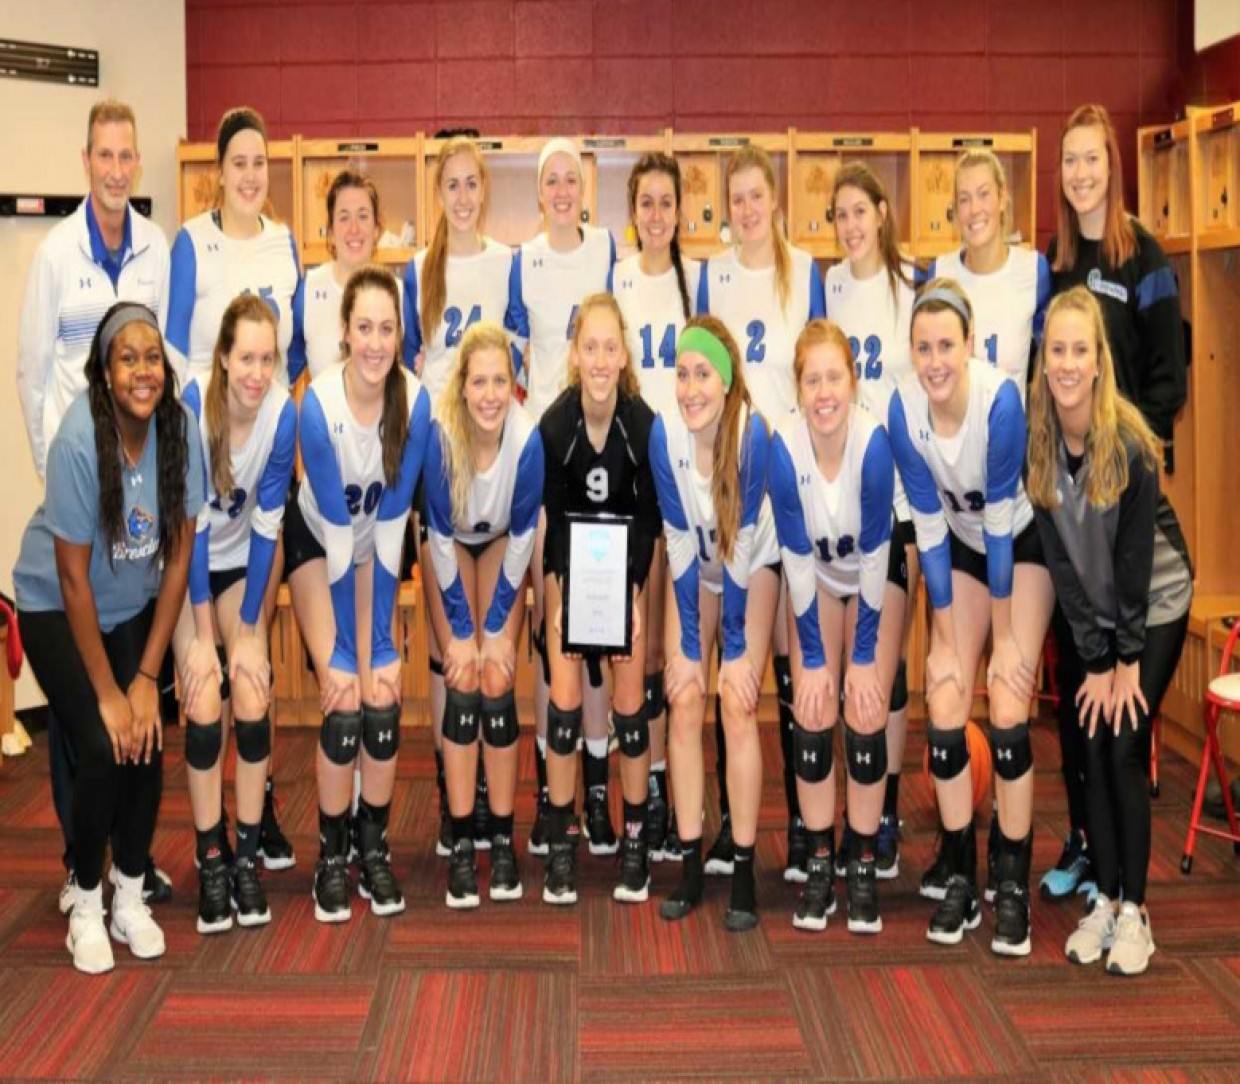 2018 Volleyball Roster Brescia University